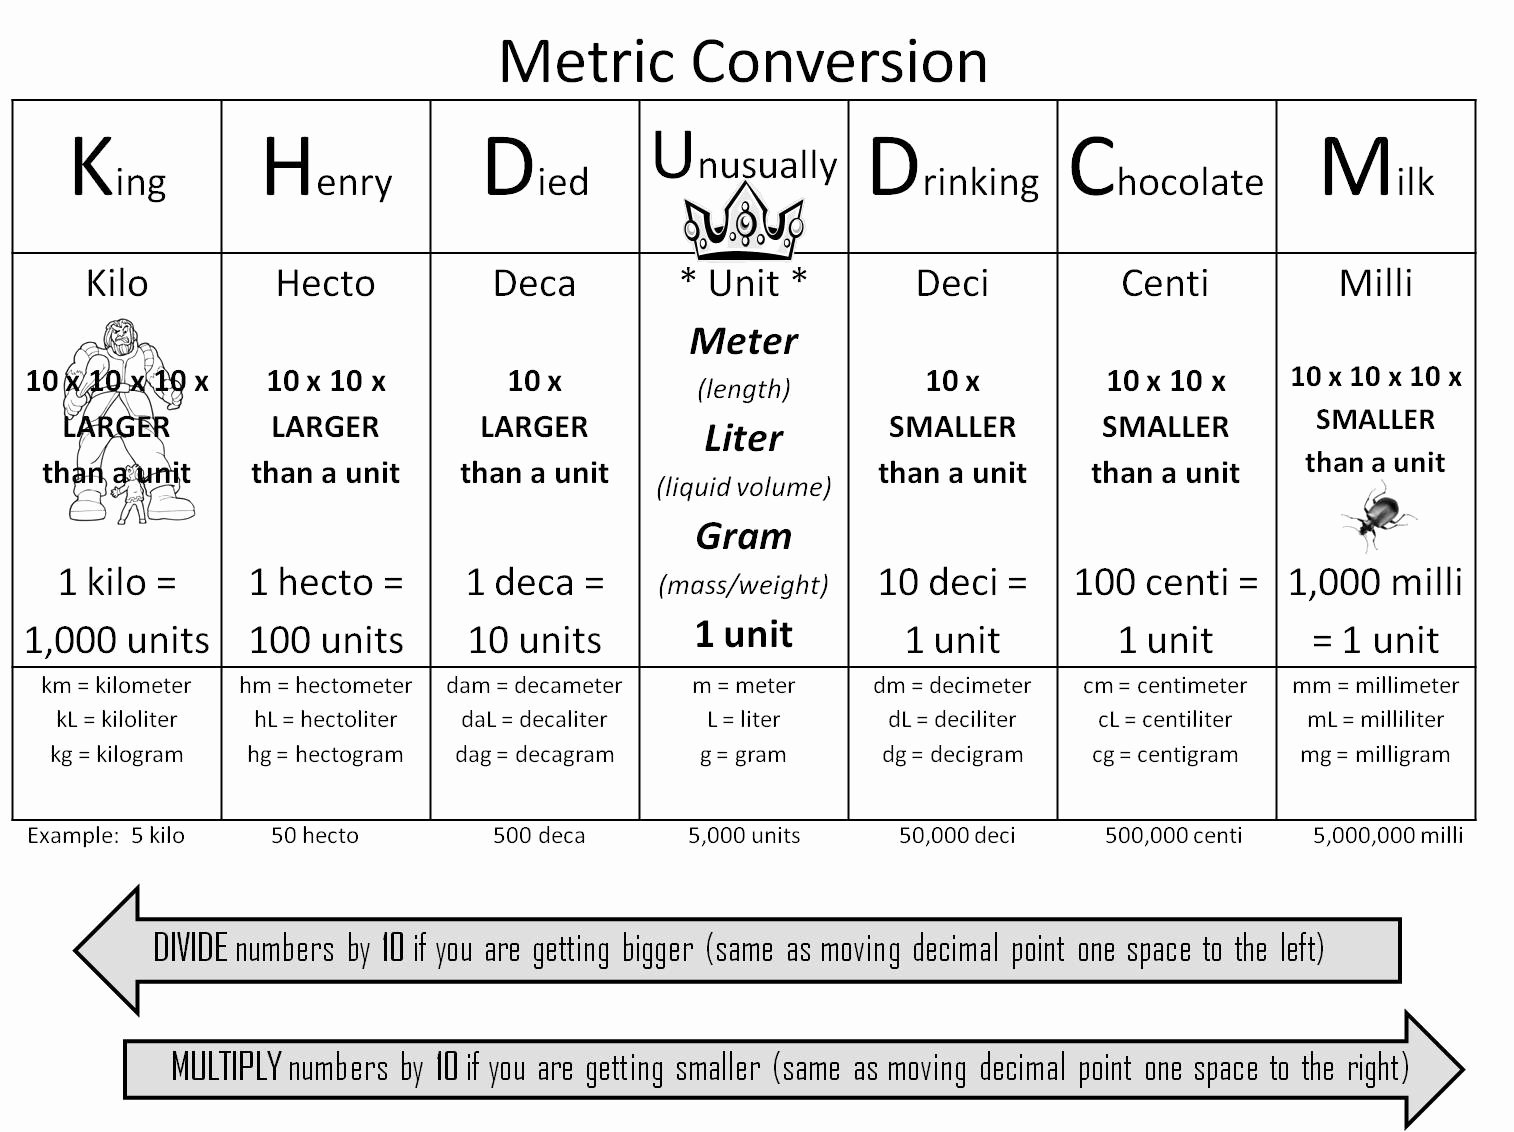 Metric System Chart Printable Unique Strong Armor Math Metric Conversion Trick